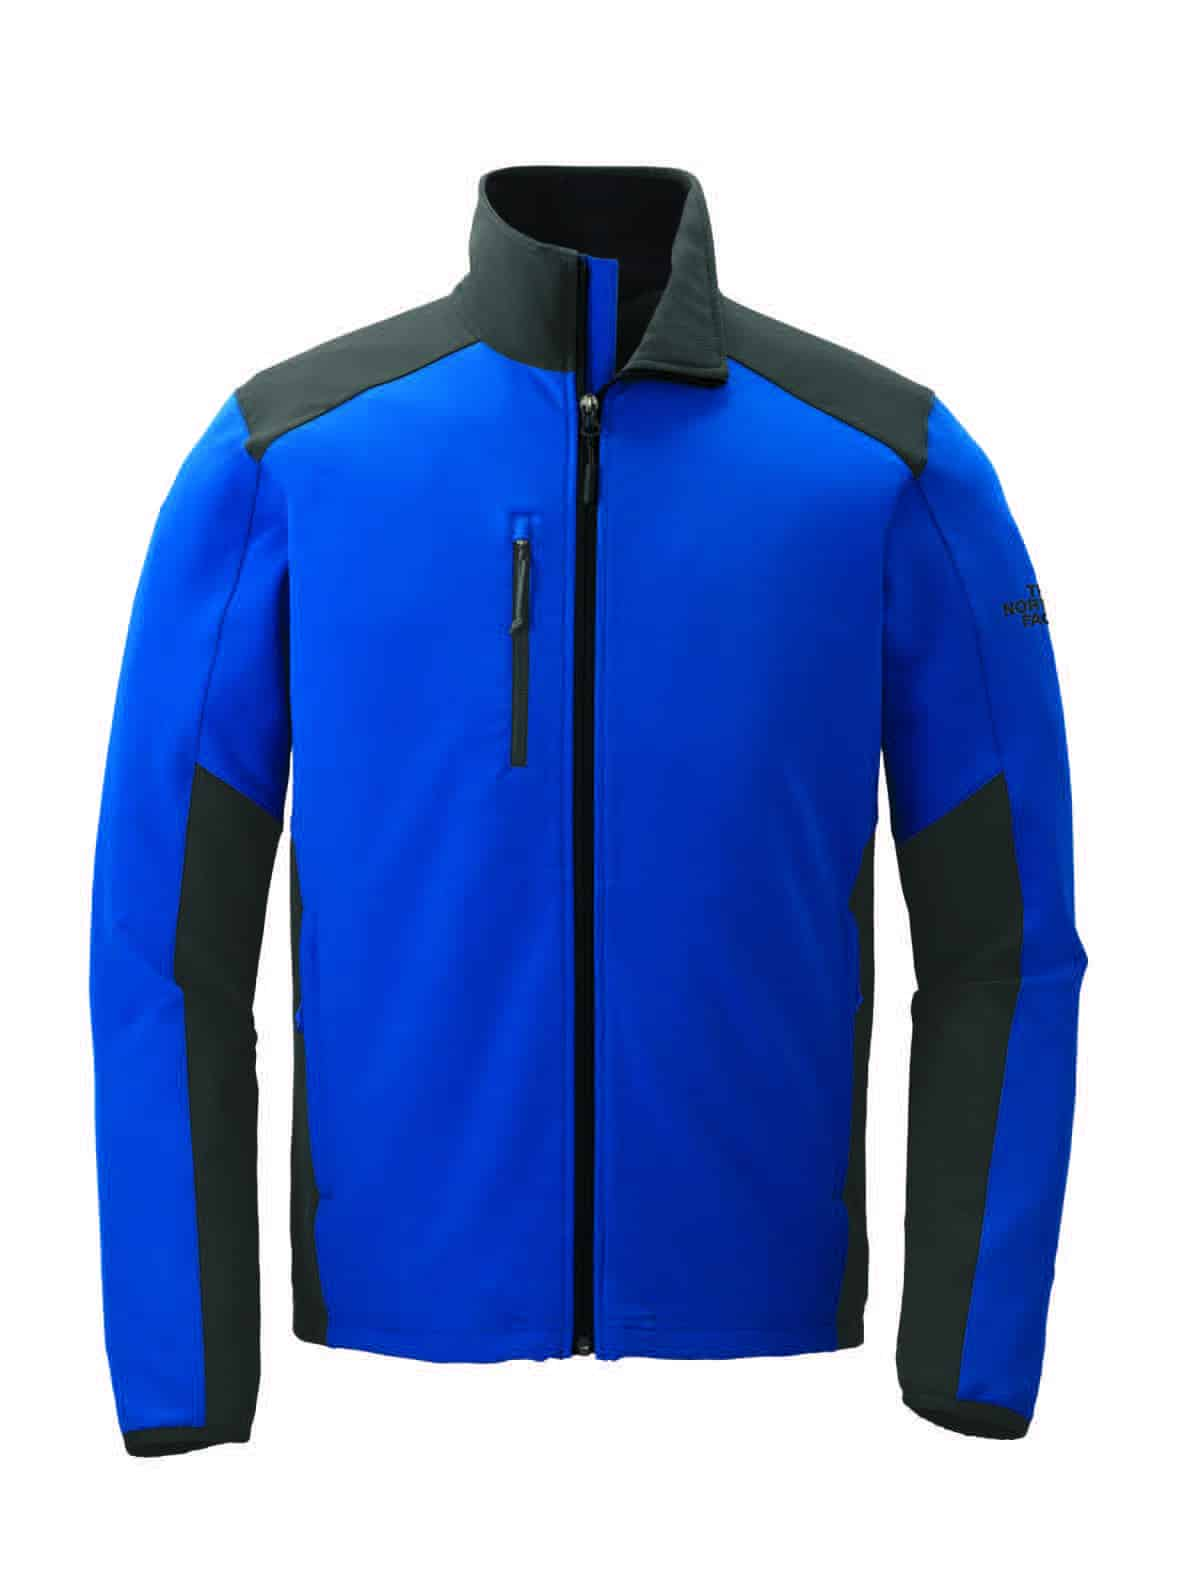 Custom North Face Jackets – Tech Stretch Soft Shell